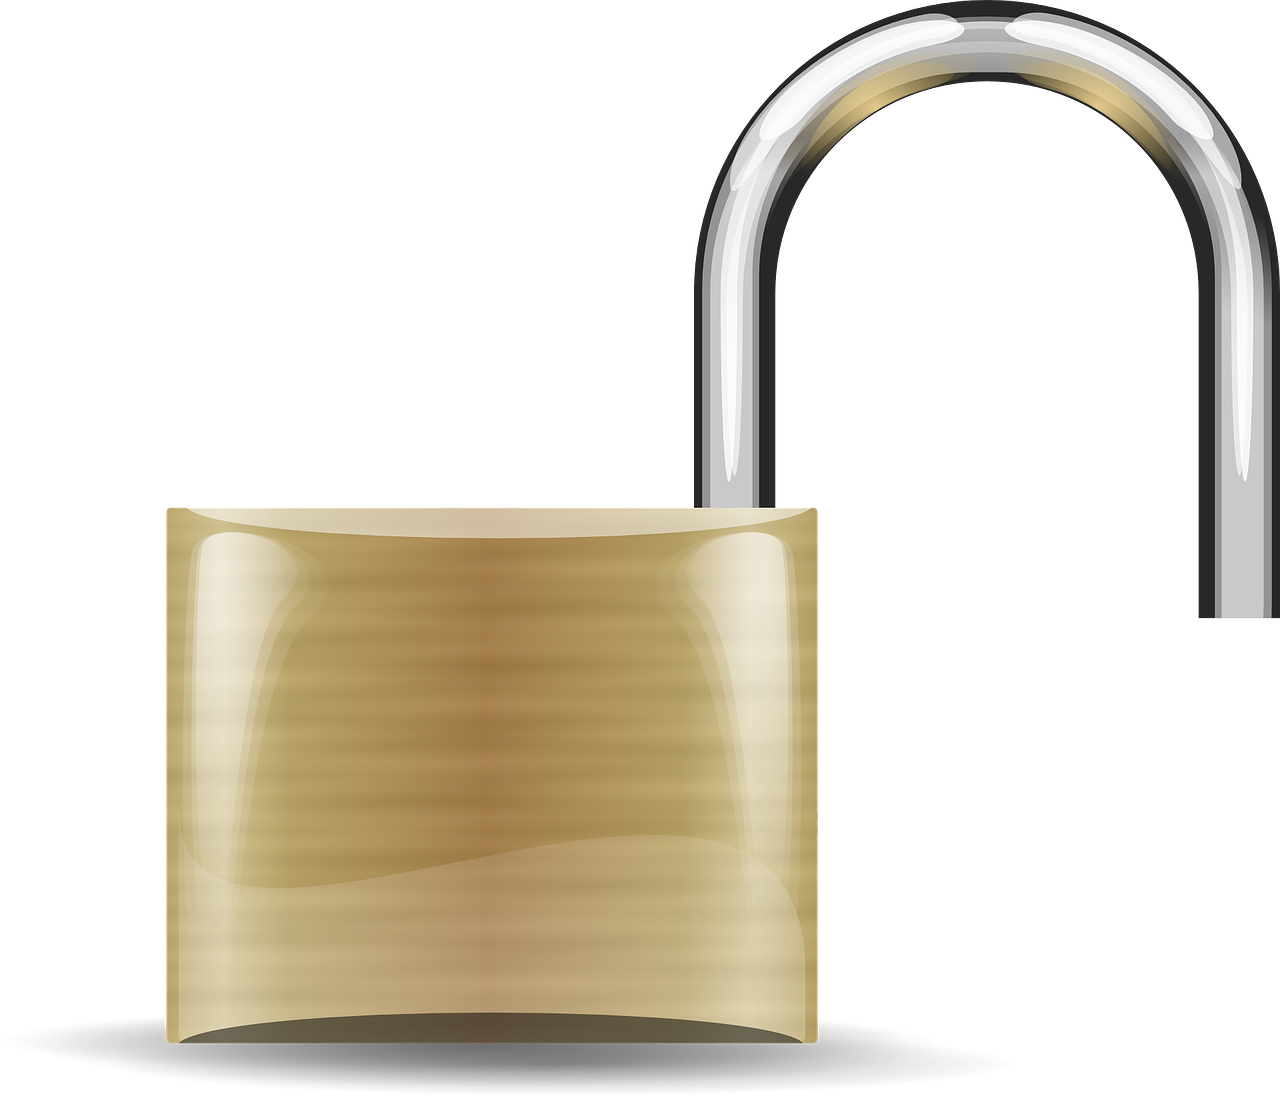 Transparent padlock practice. C core guidelines the